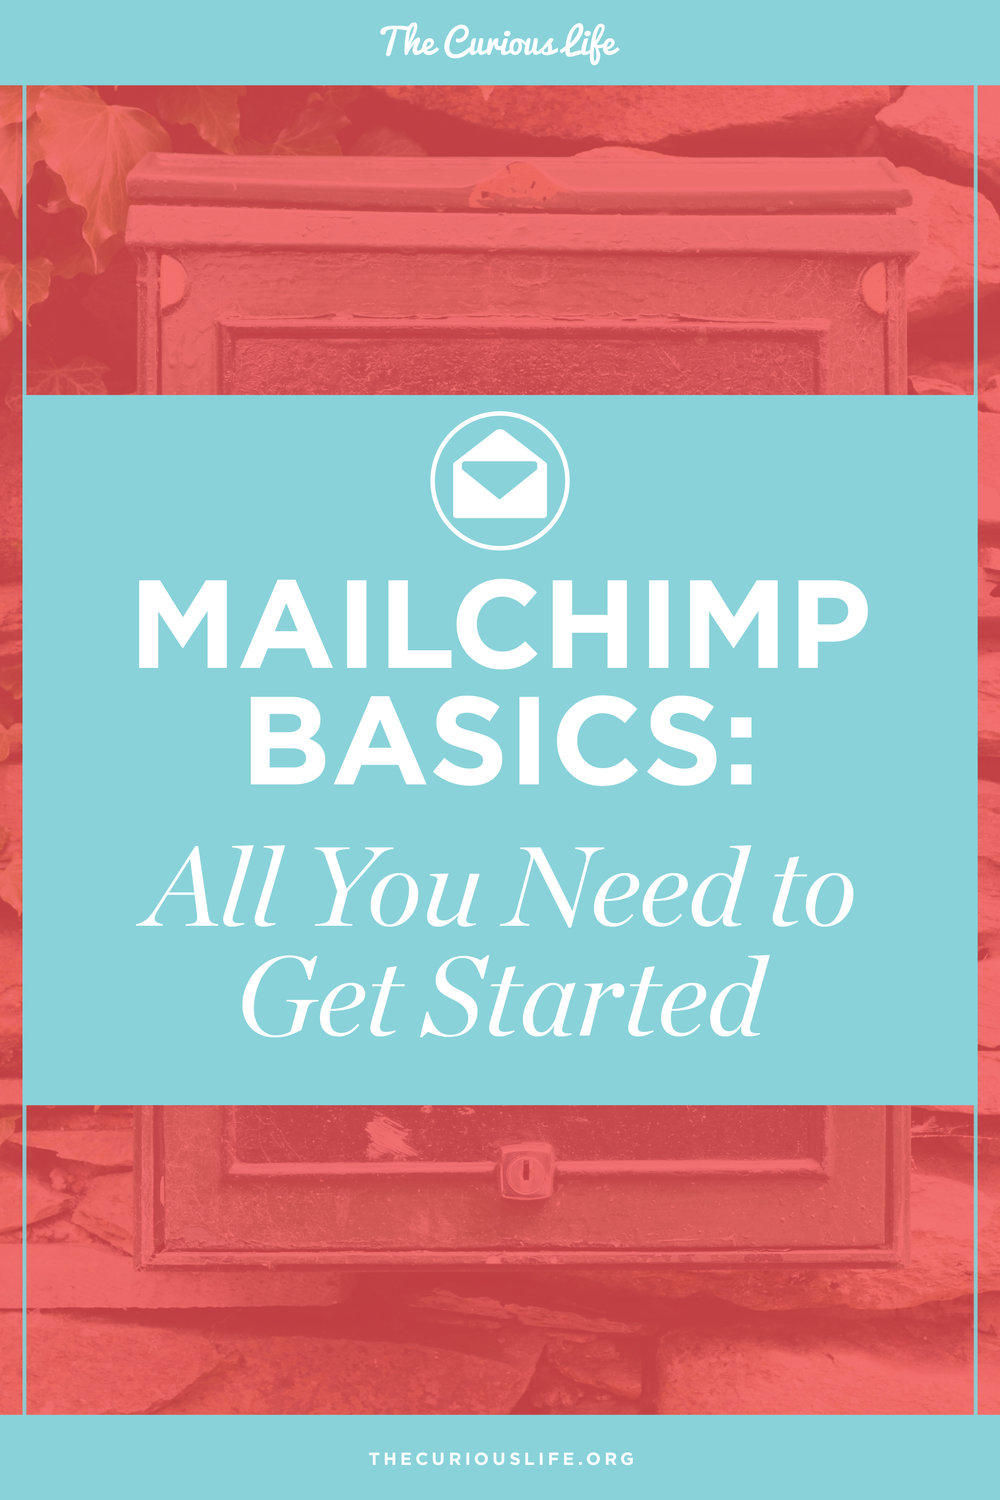 mailchimp basics how-to newsletter list tutorial